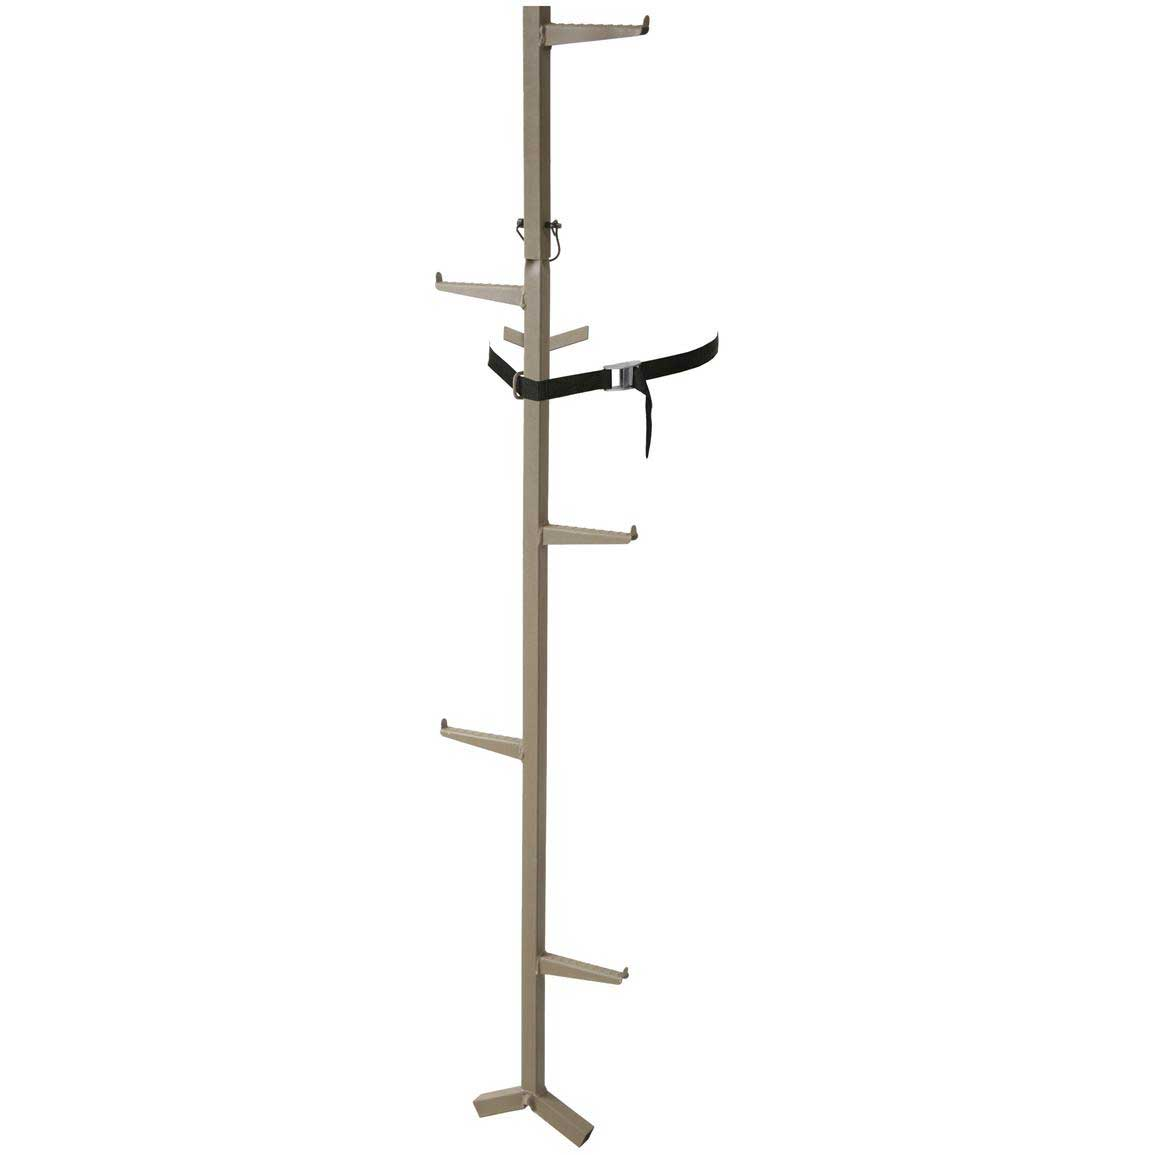 Millennium M210 20FT Stick Ladder_1.jpg